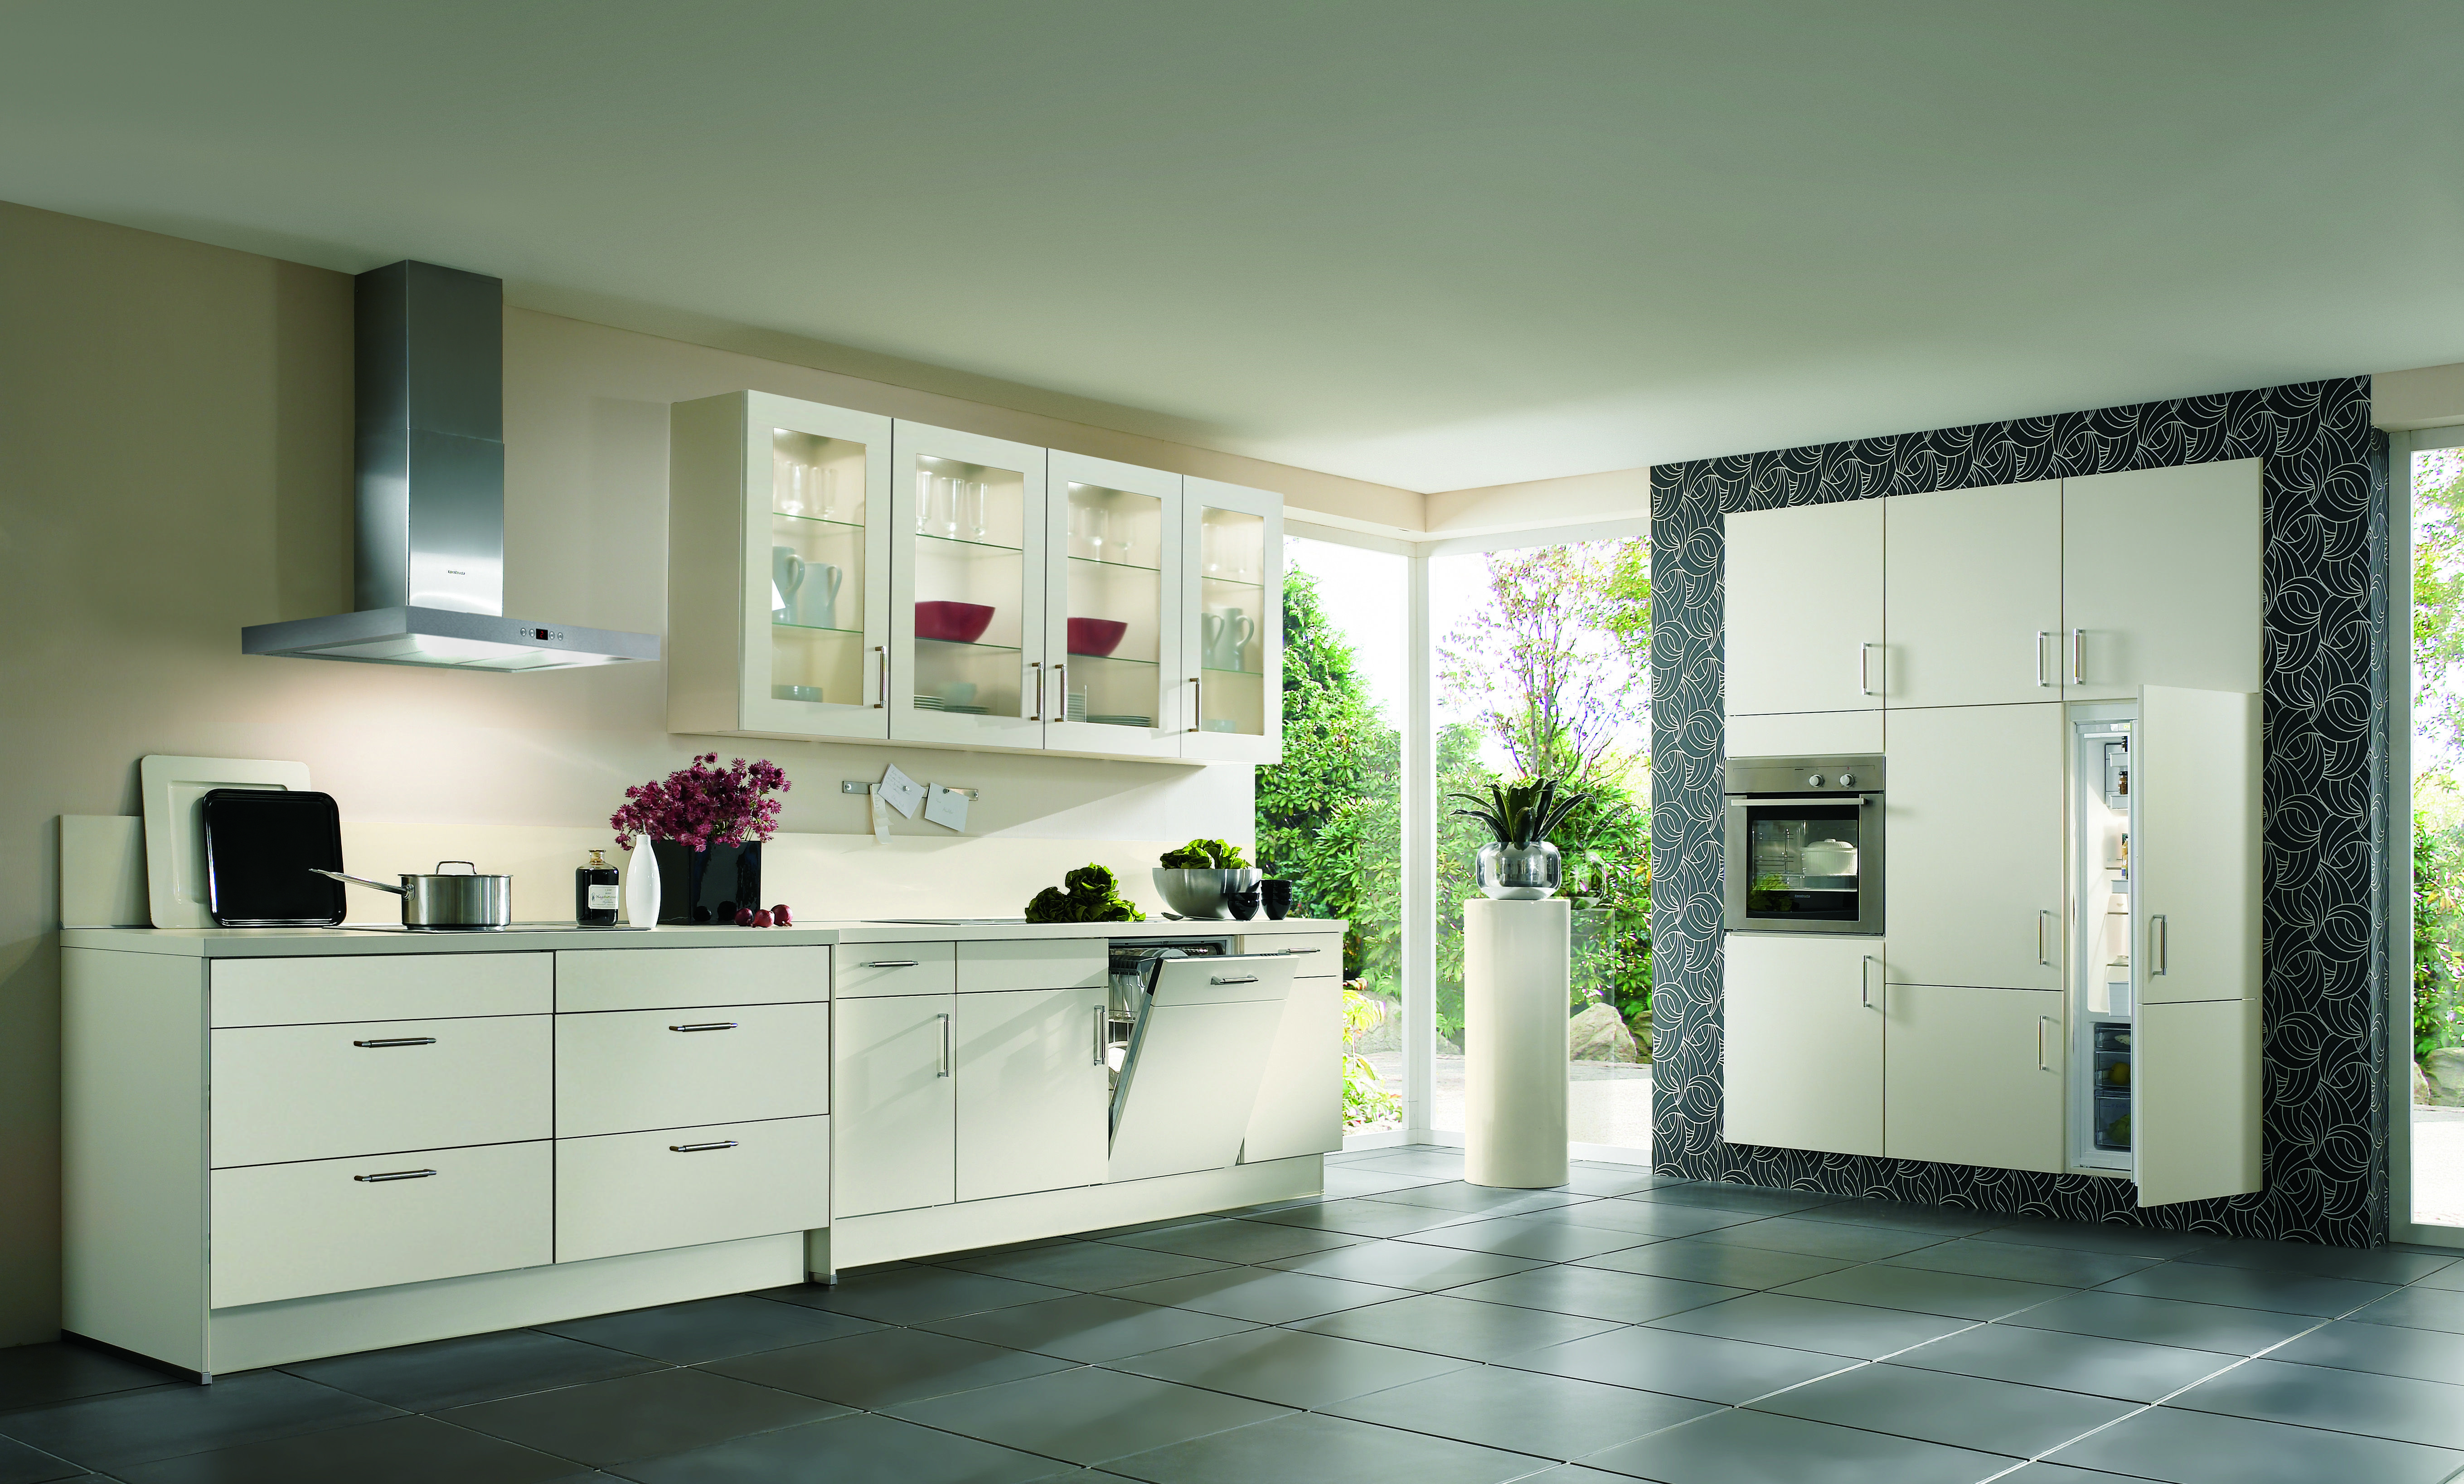 Link Design Interiors Are Renowned For Their High Quality Traditional Germankitchens Available At German Kitchen Design Modern Kitchen Design German Kitchen